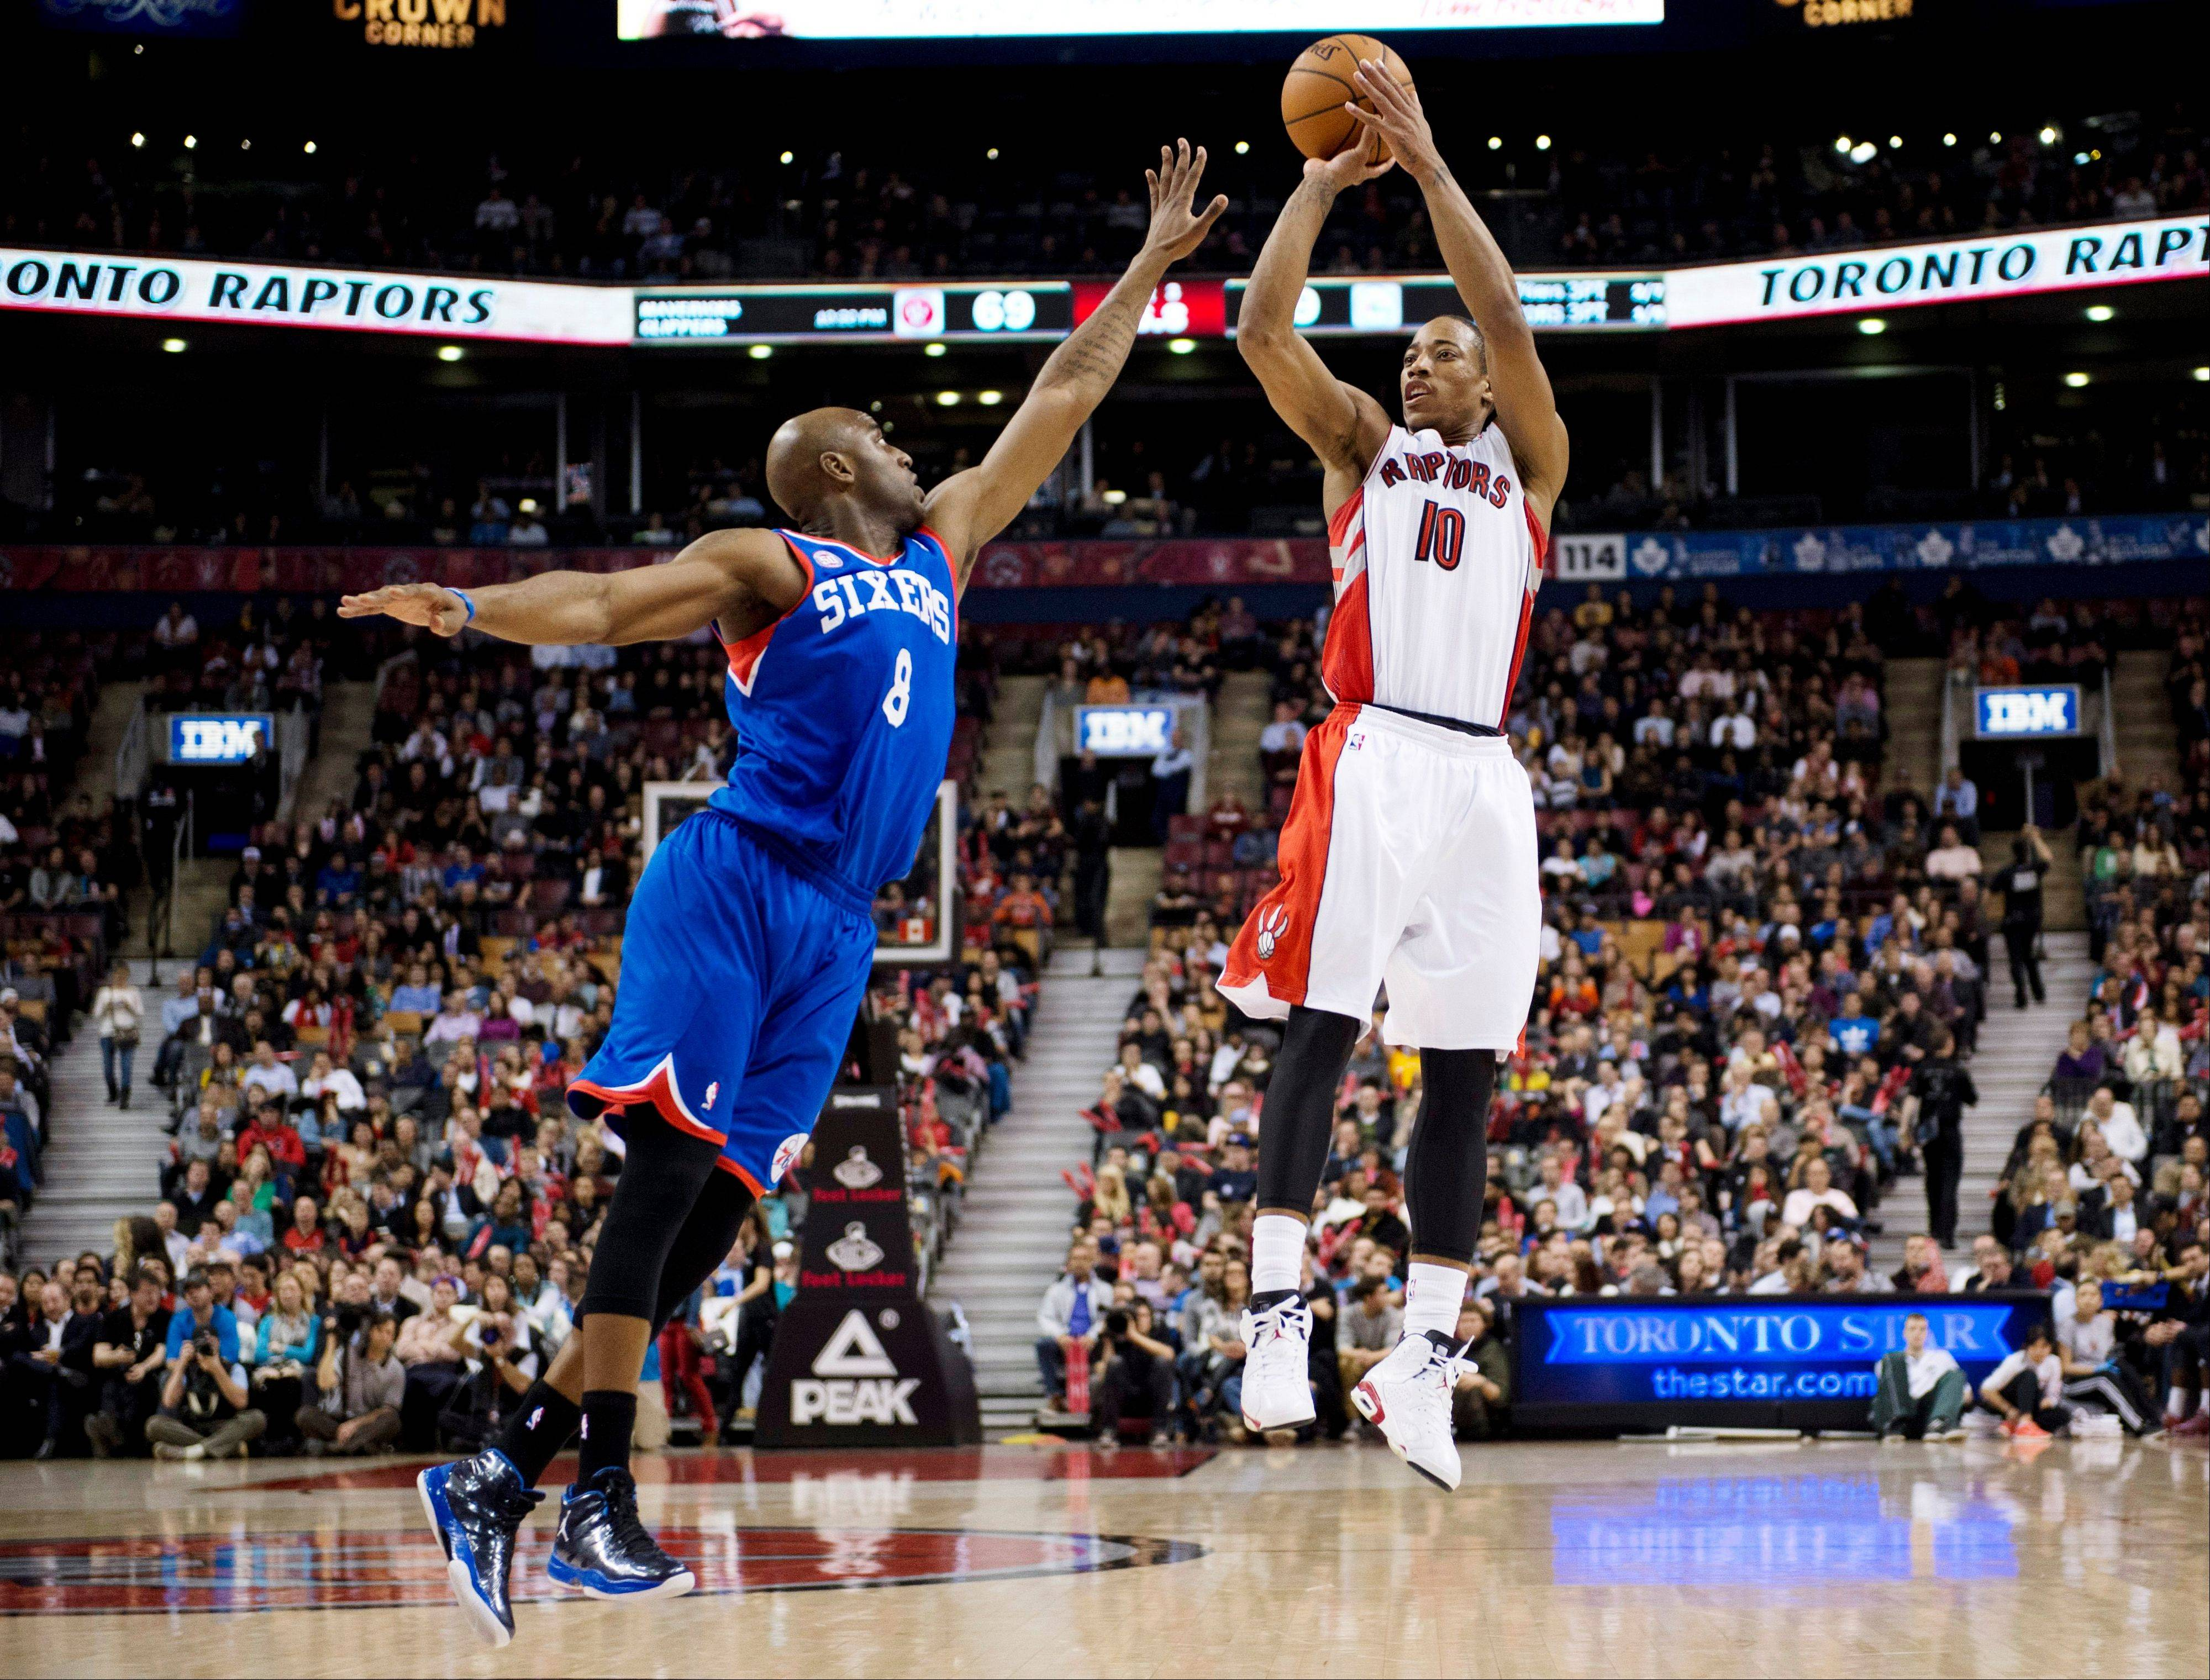 Toronto Raptors guard DeMar DeRozan (10) shoots as Philadelphia 76ers guard Damien Wilkins (8) tries to block during the second half of their NBA basketball game Wednesday in Toronto. The Raptors won 90-72.